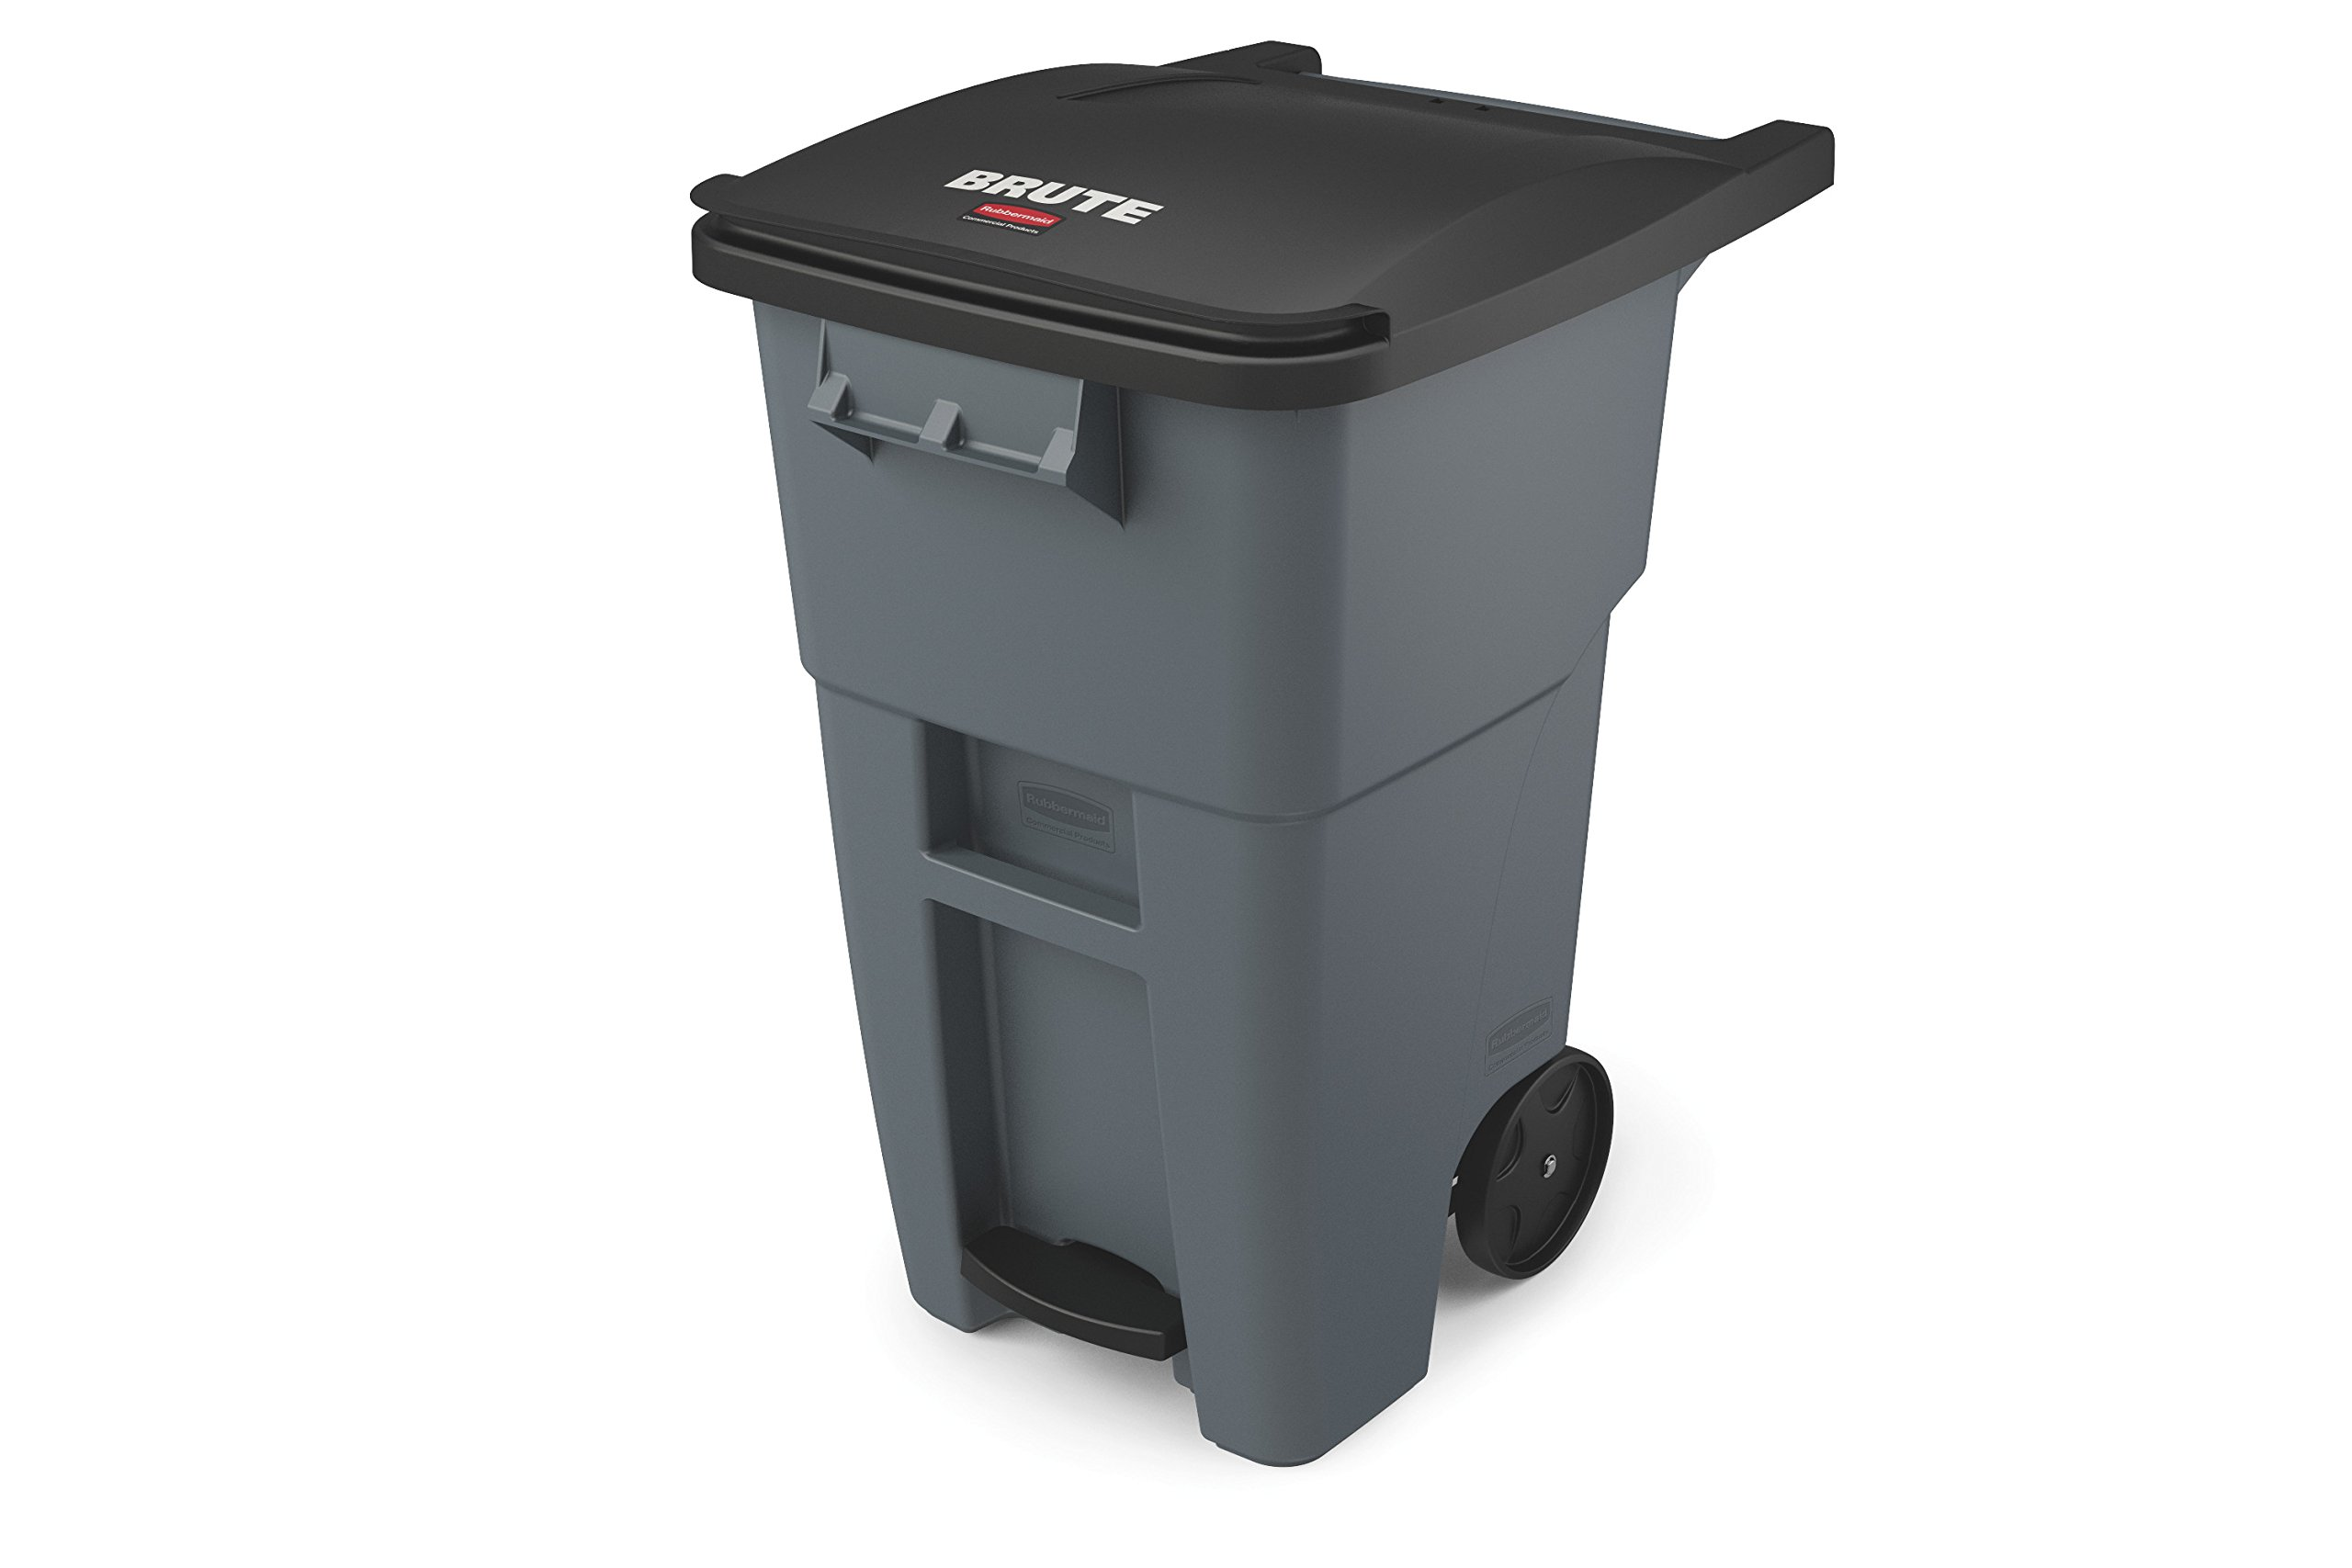 Rubbermaid Commercial 1971956 Brute Step-On Rollout Trash Can, 50 gal/189 L, 39.578'' Height, 24.000'' Width, Gray by Rubbermaid Commercial